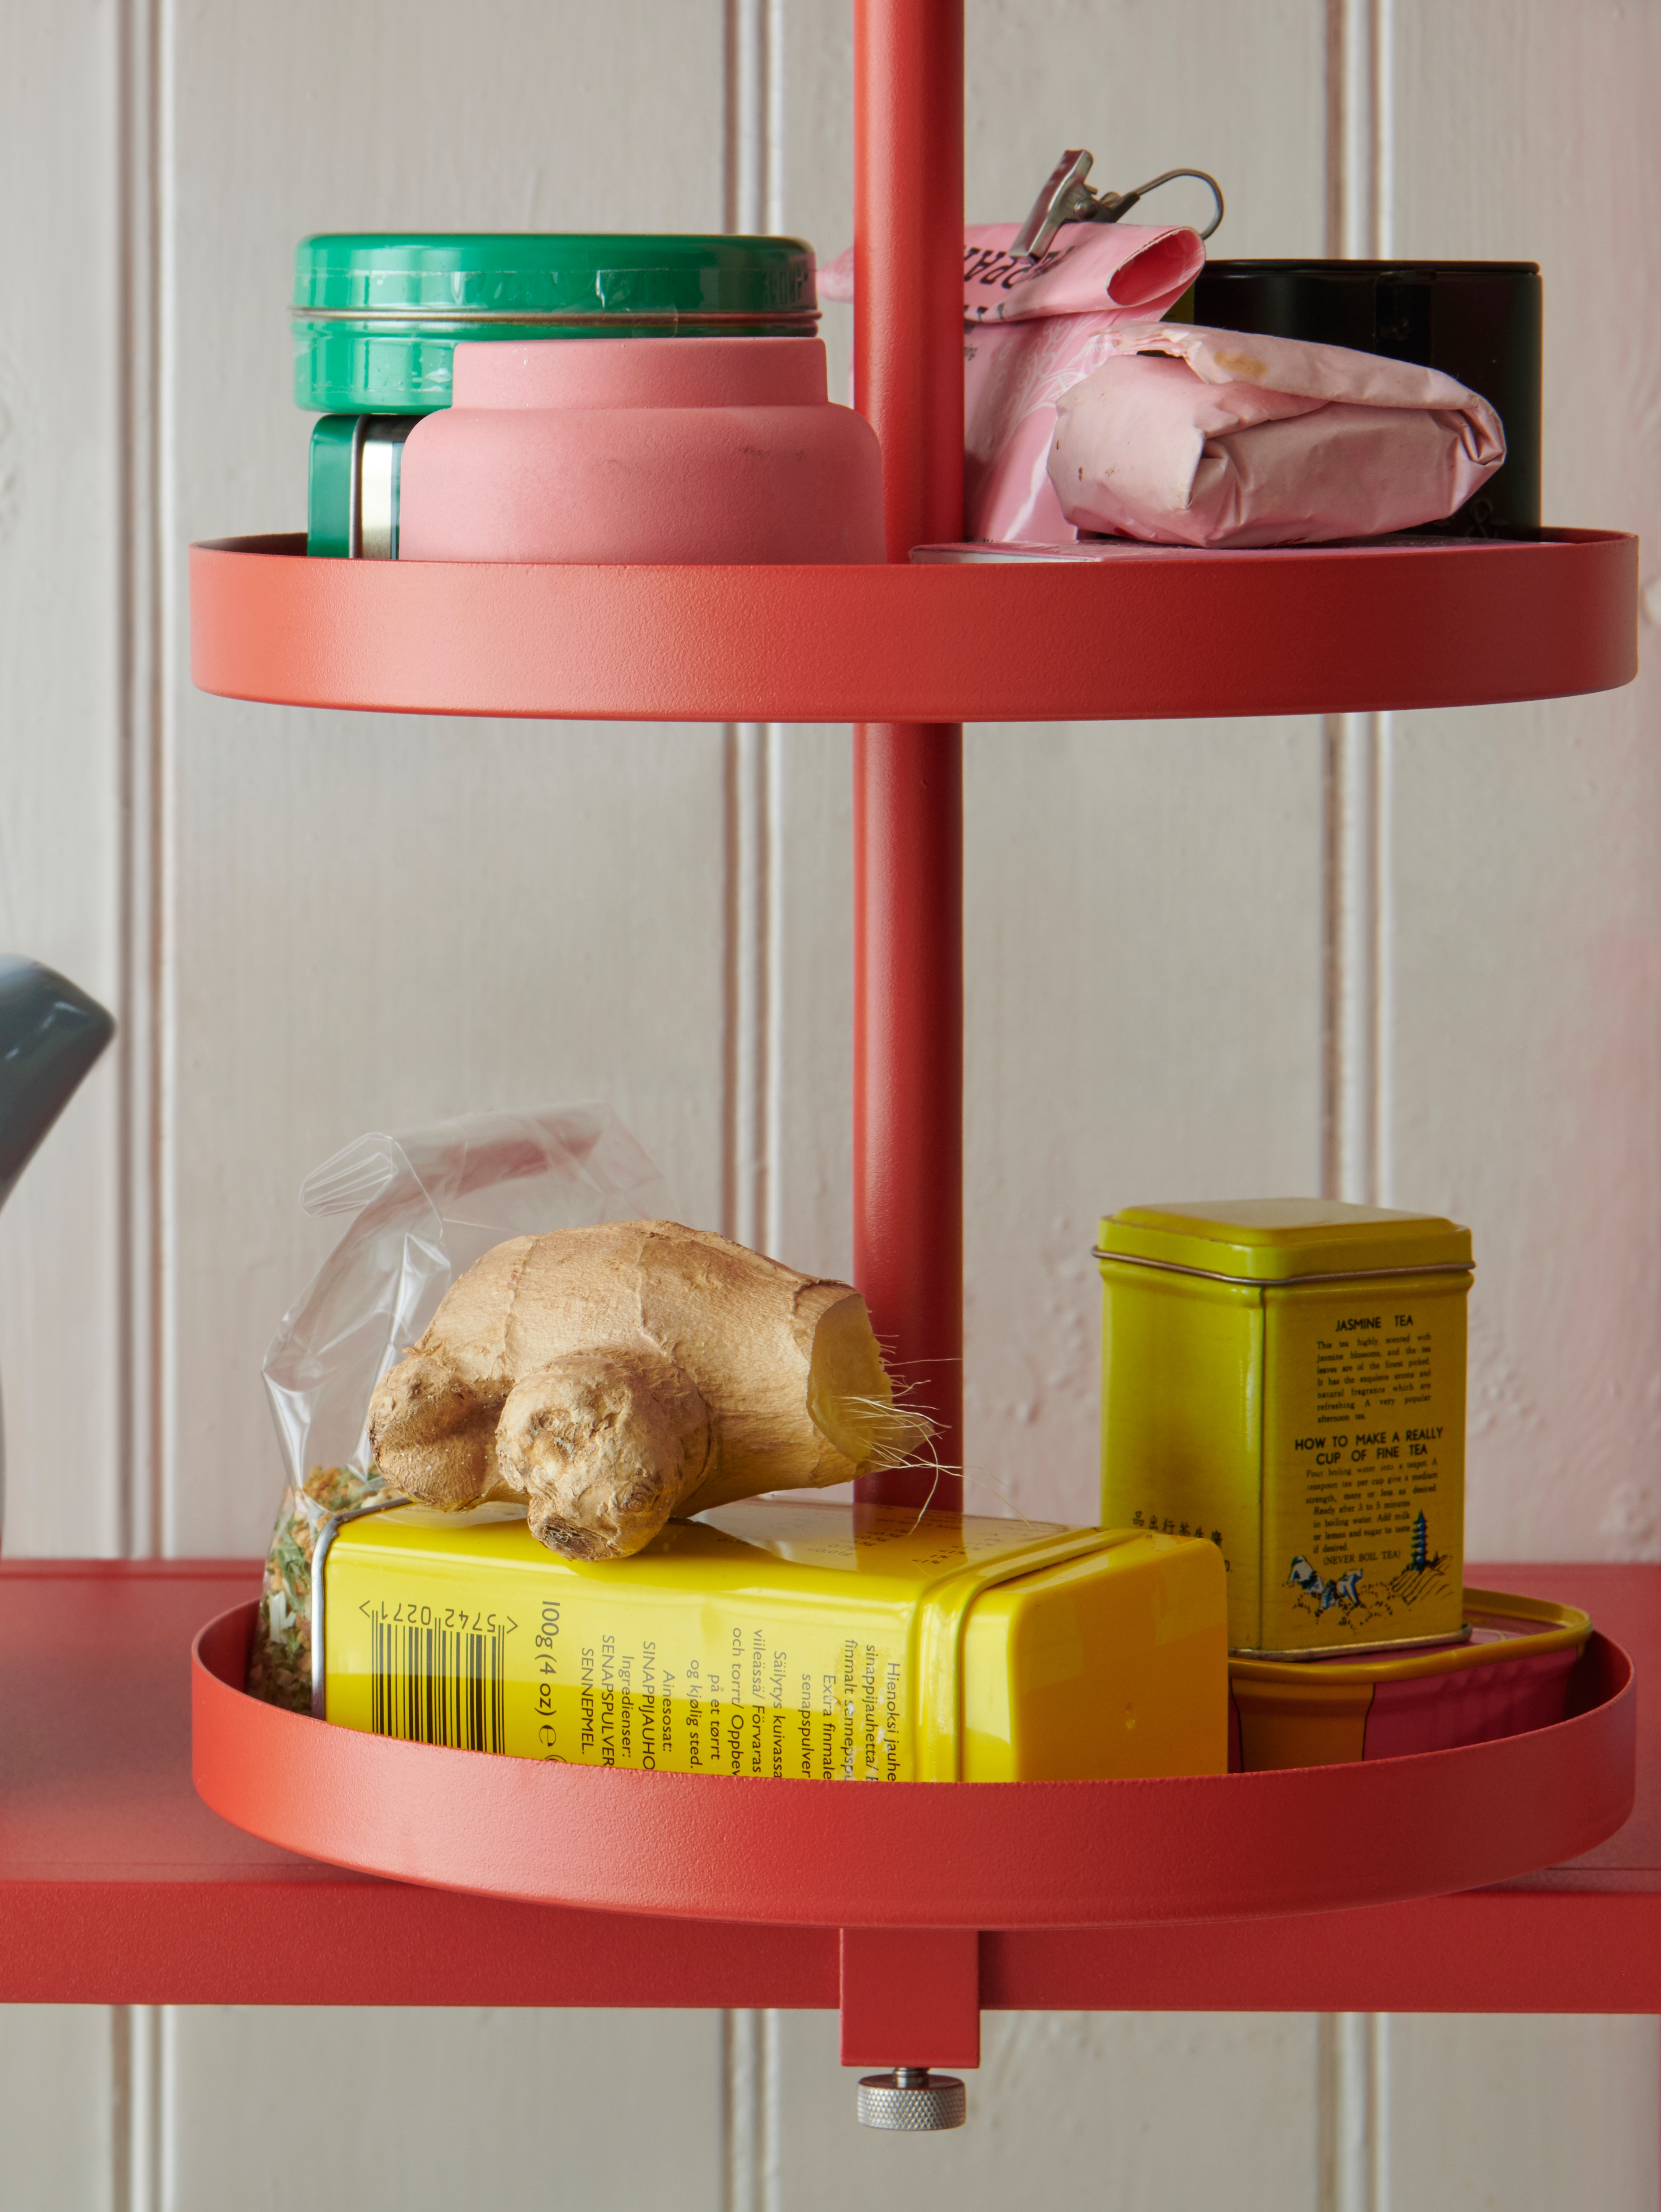 A red-orange ENHET swivel shelf filled with small cans and containers, fastened to an ENHET shelf.